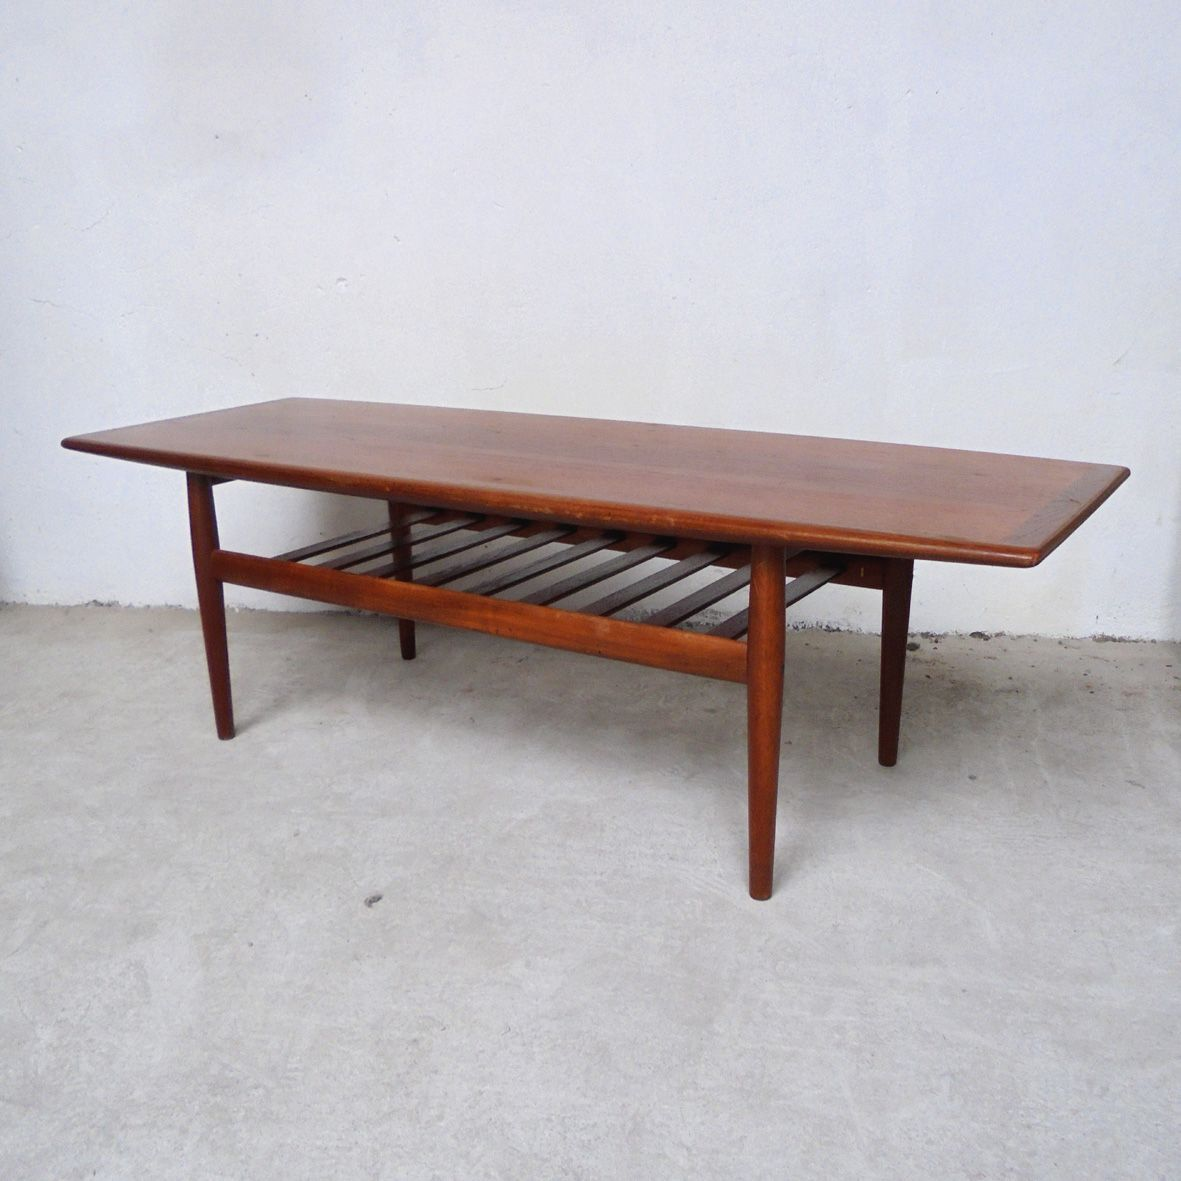 Large Danish Coffee Table By Grete Jalk For Glostrup